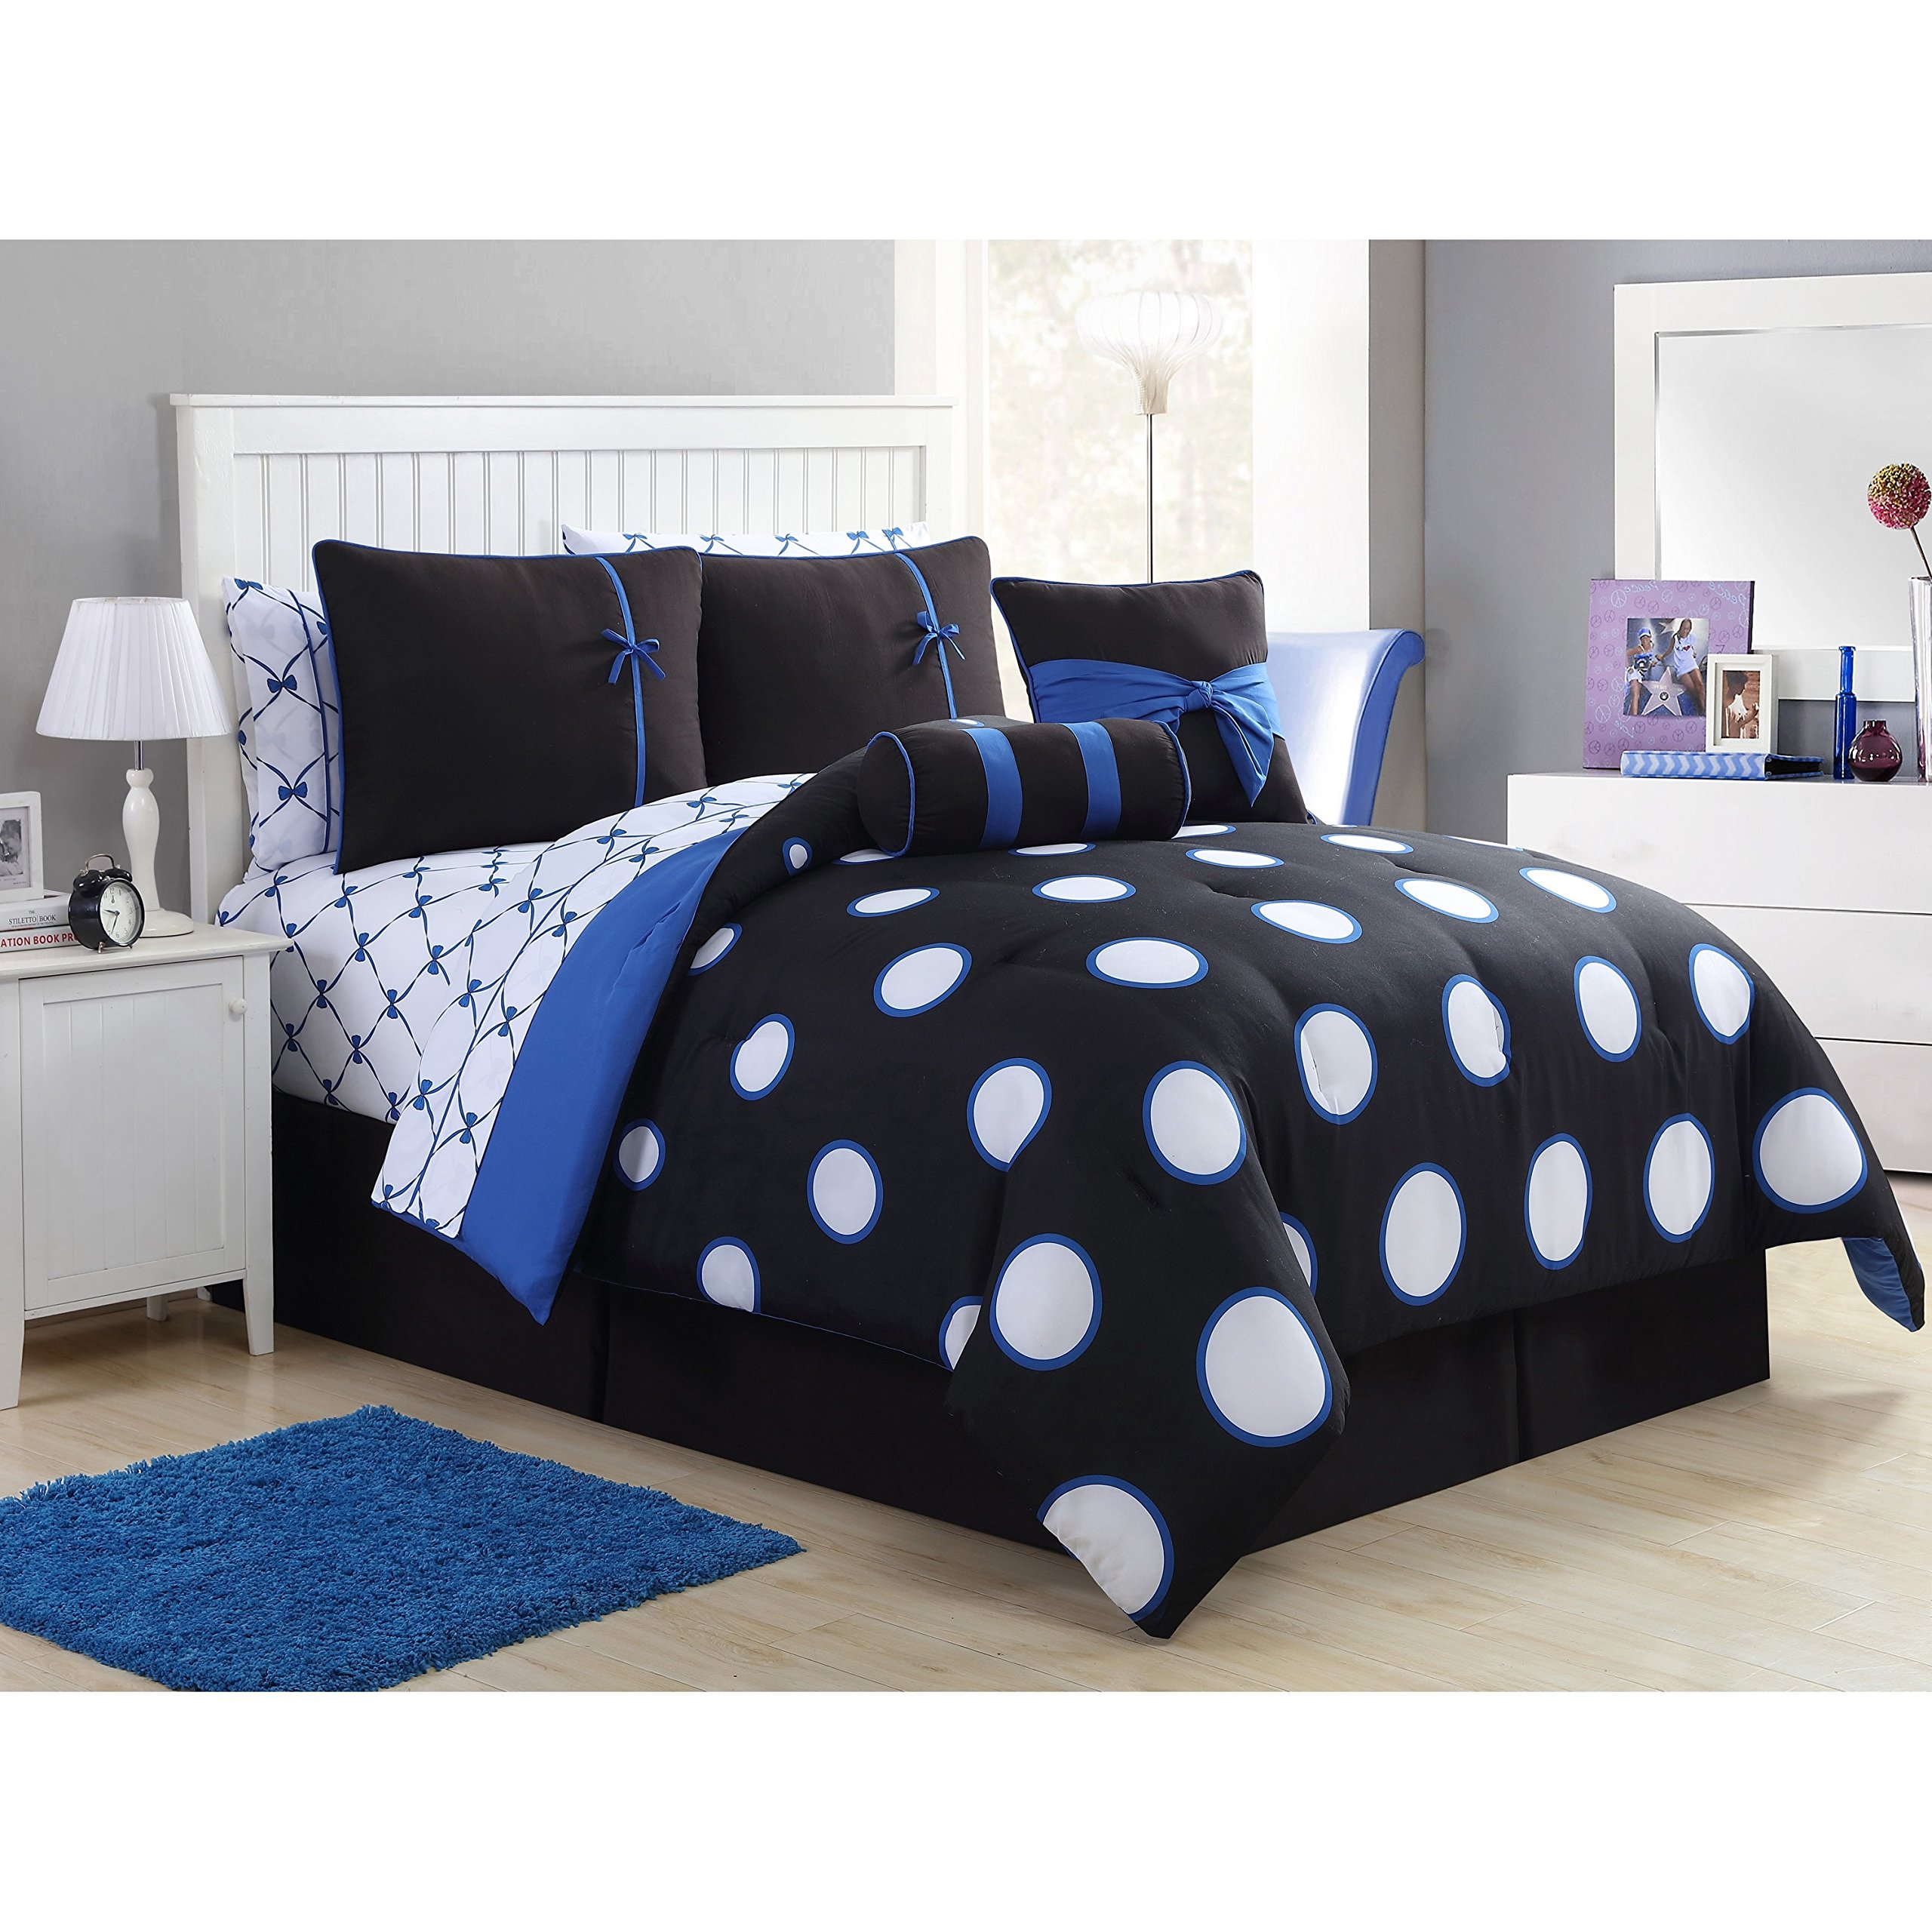 Teen Girl Comforter Sets Blue Black and White Polka Dot Bed in a Bag with Designer Home Sleep Mask (Full Blue)